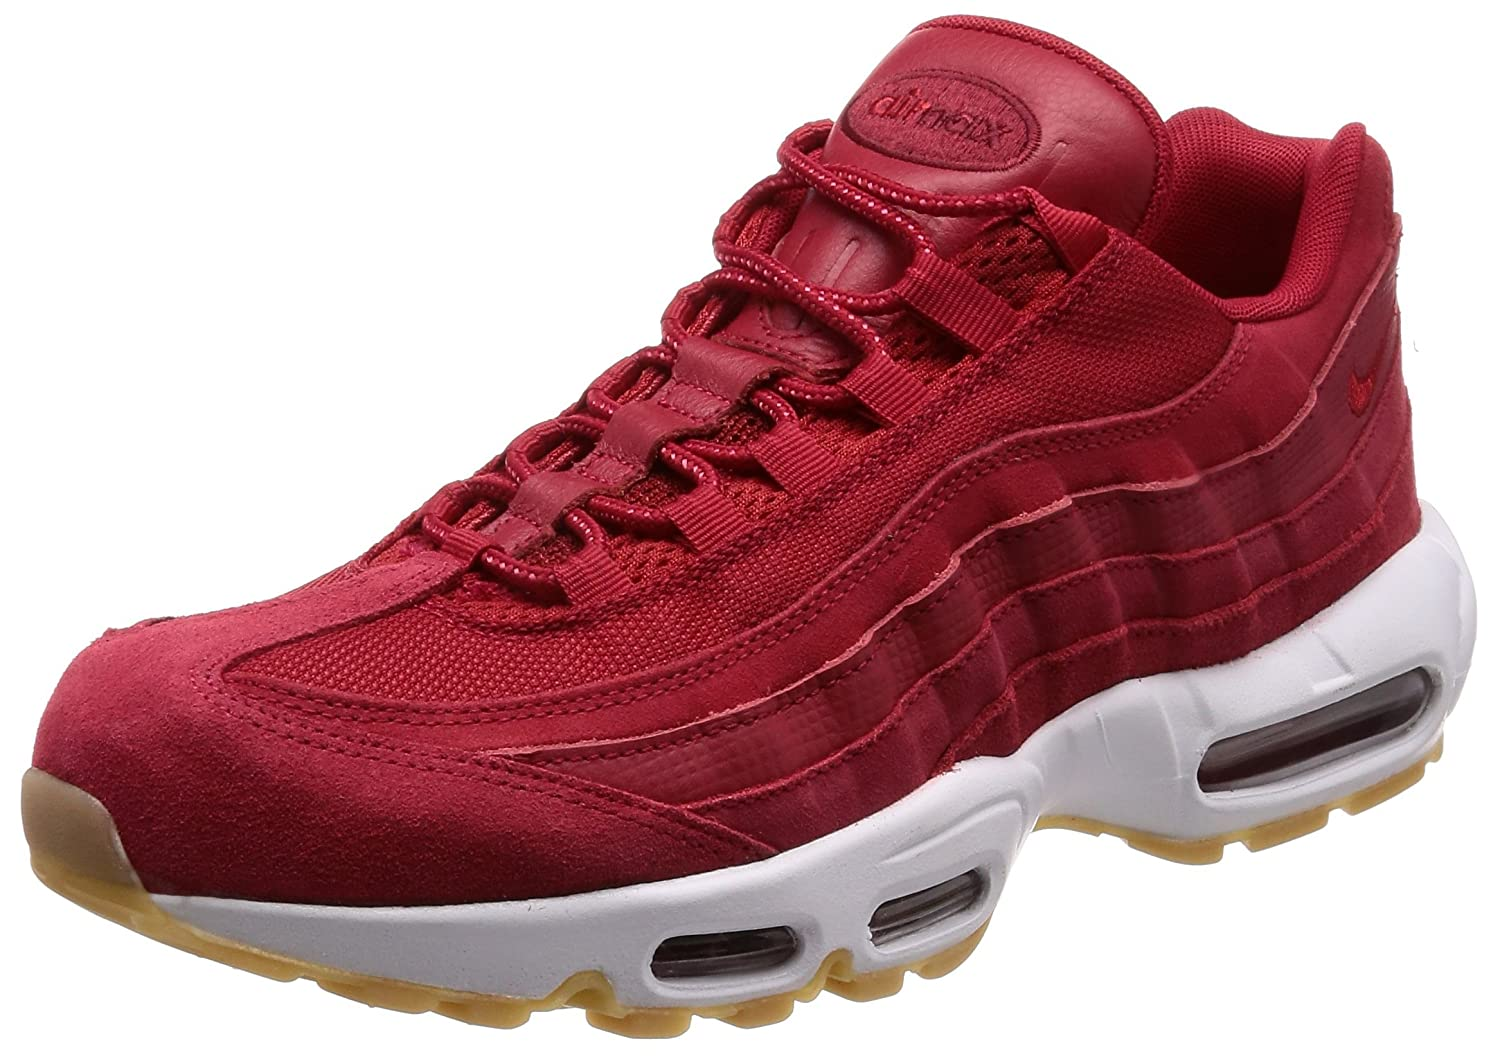 info for 4302e 0cd74 Amazon.com   Nike Men s Air Max 95 Premium Sneaker Gym Red Team Red White    Shoes